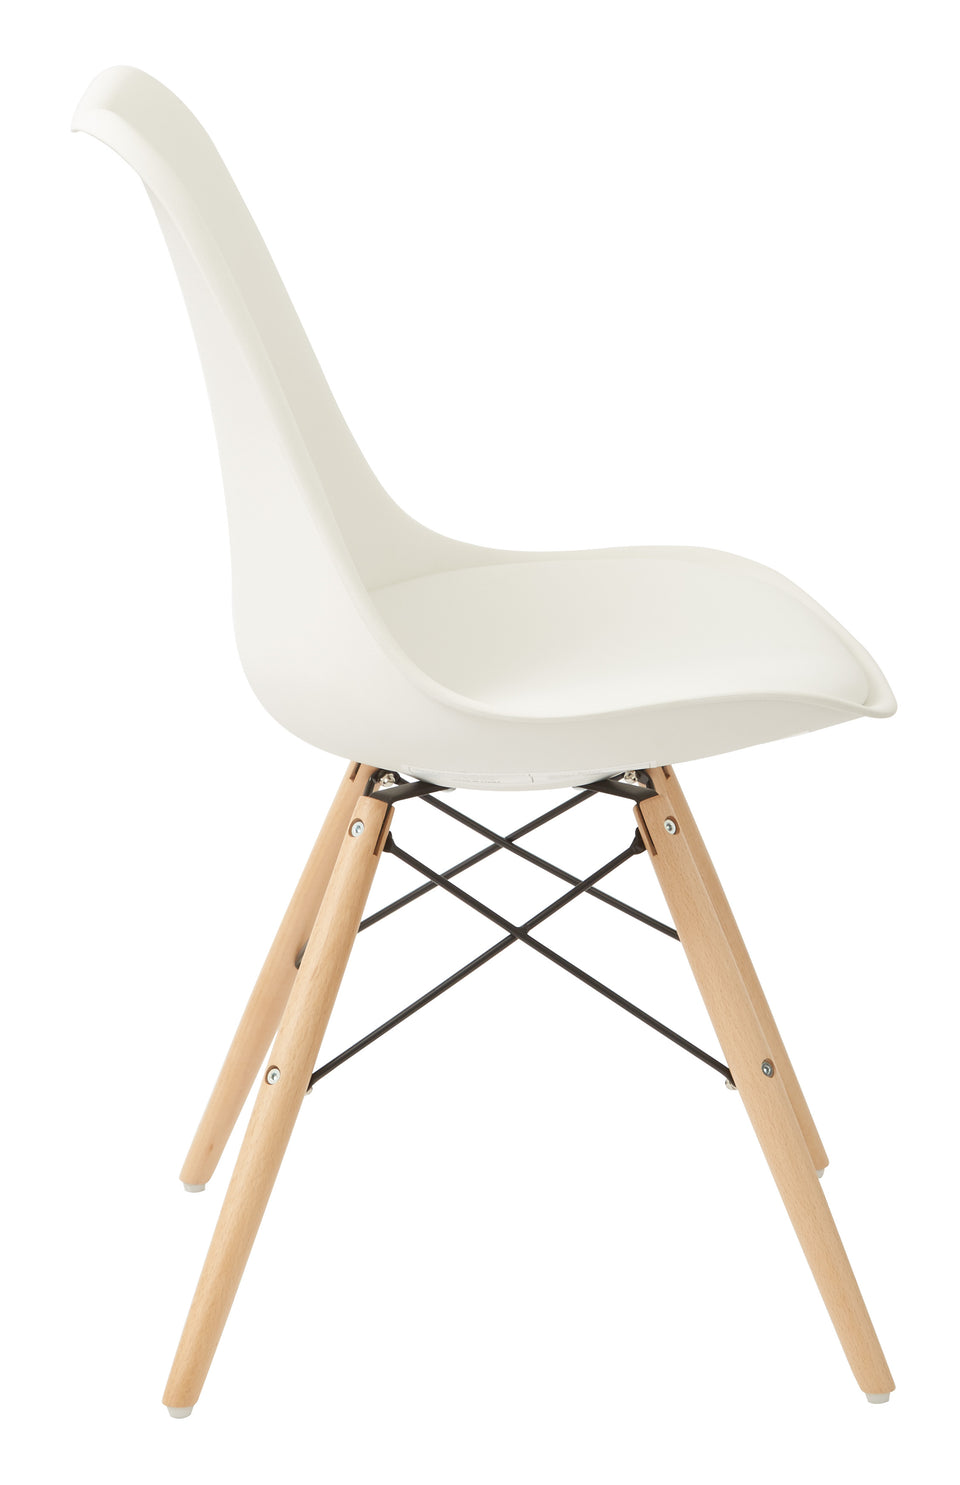 mid century modern aimes white bucket chair with natural post legs scandinavian design inspired from decurban.com side view